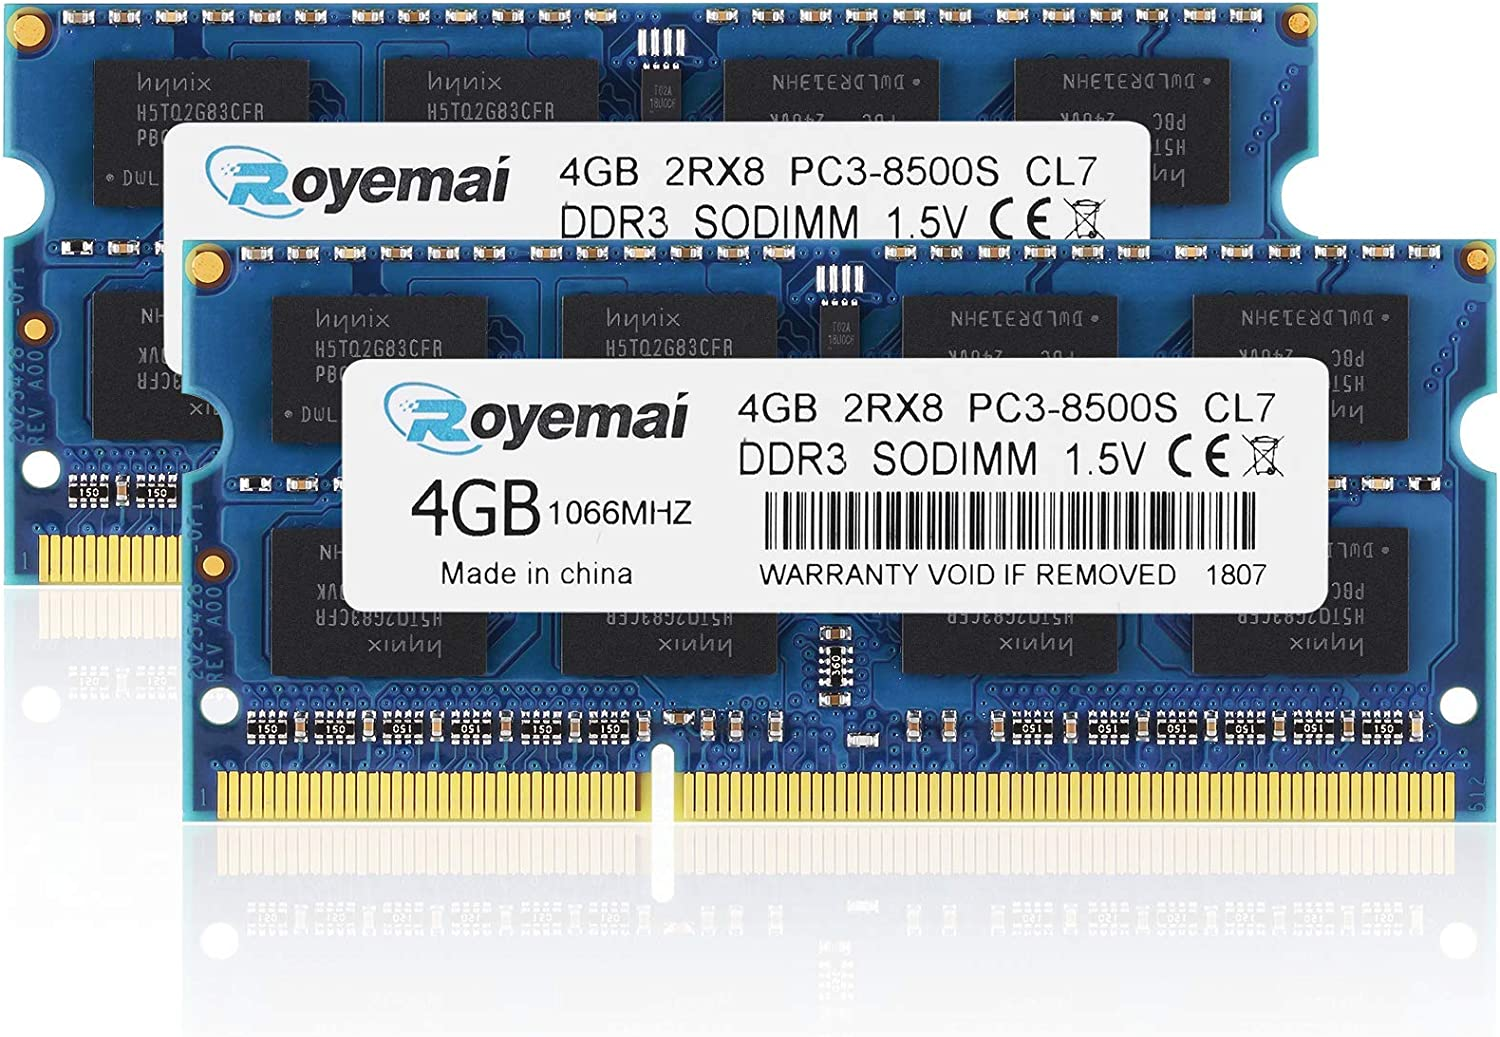 8GB Kit (2x4GB) PC3-8500 DDR3 1067MHz 1066MHz RAM Upgrade for Late 2008, Early/Mid/Late 2009, Mid 2010 MacBook, MacBook Pro, iMac, Mac Mini